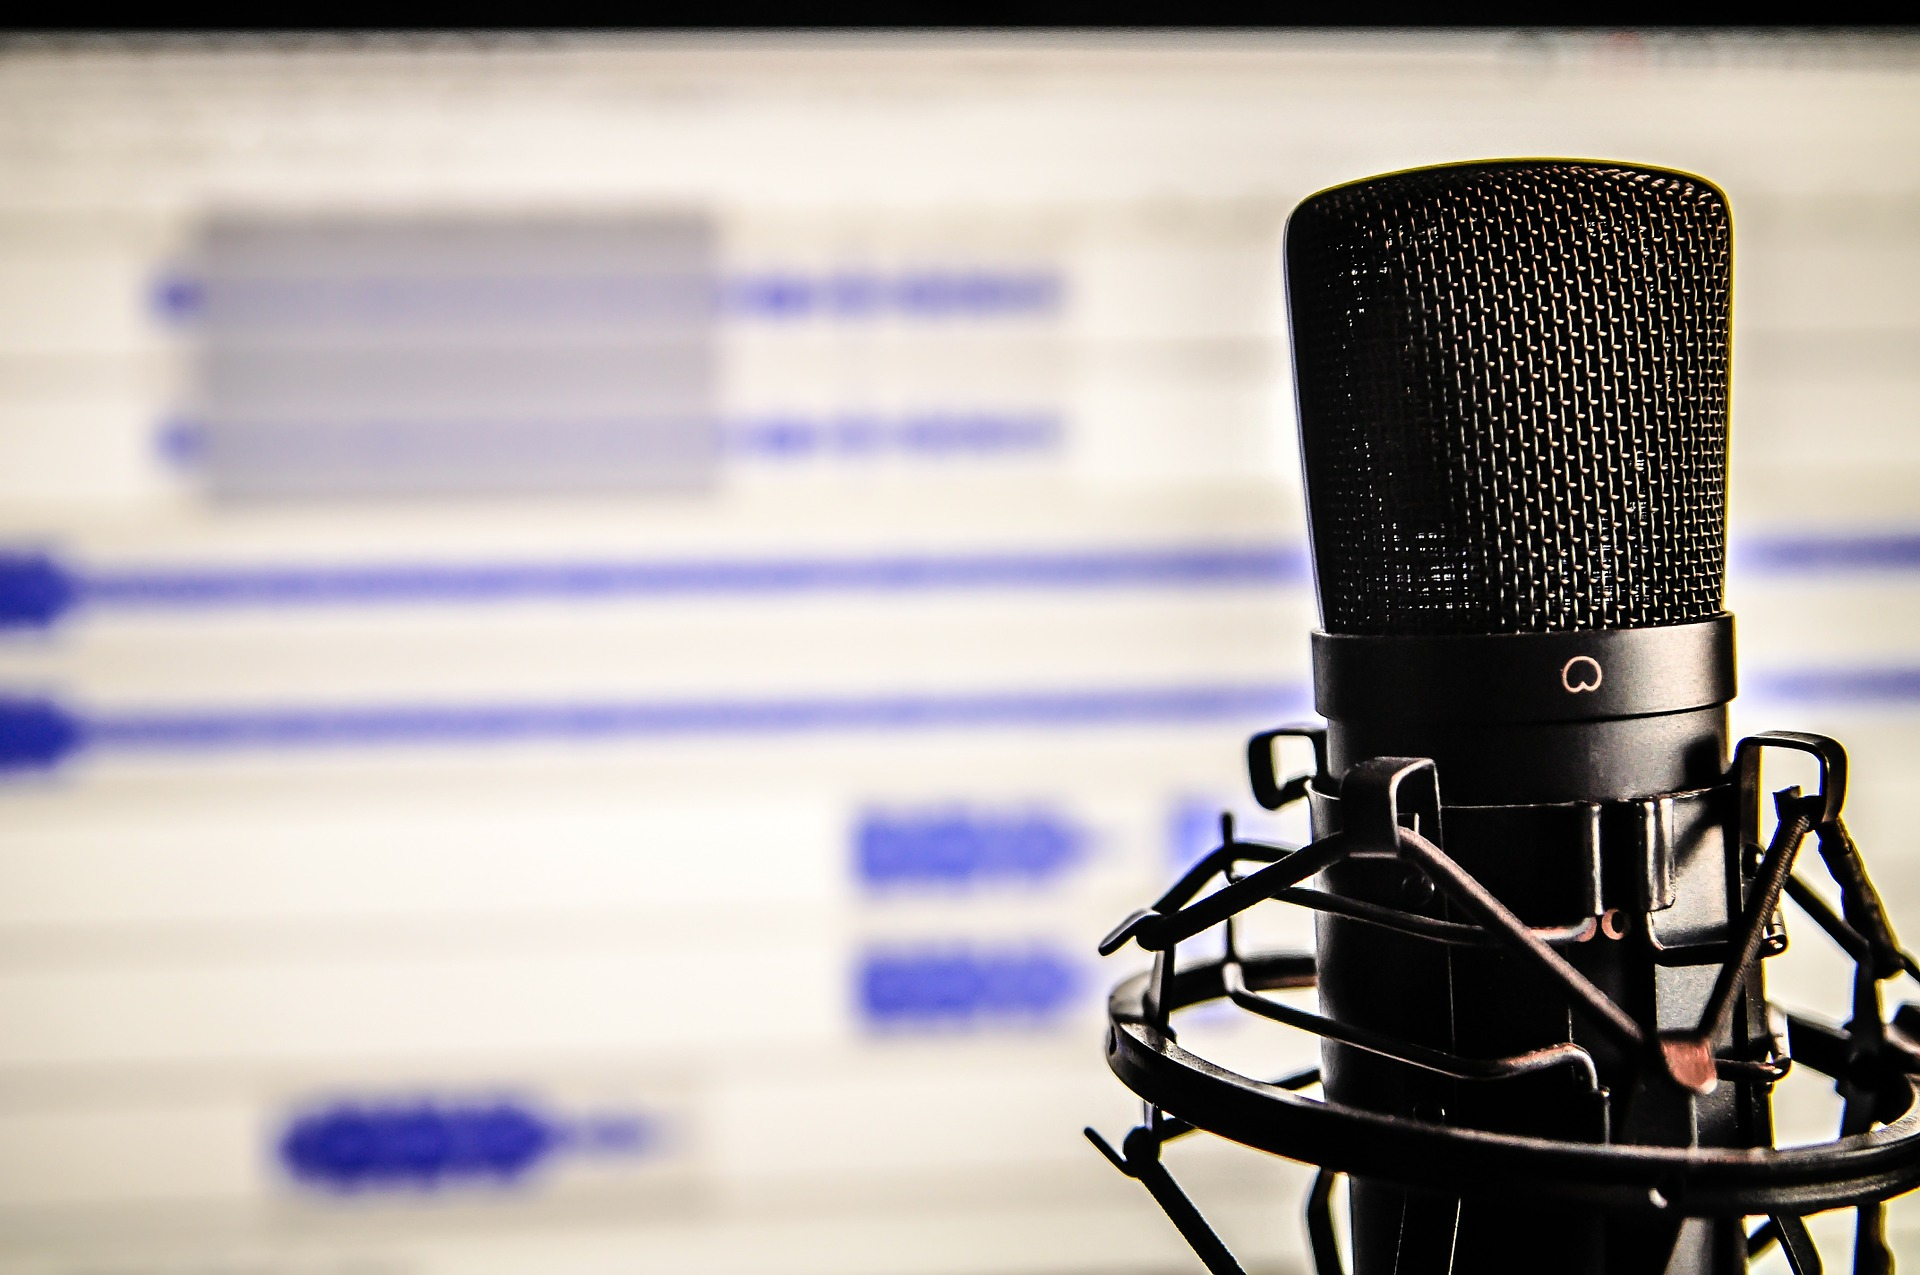 Podcast mic and monitor